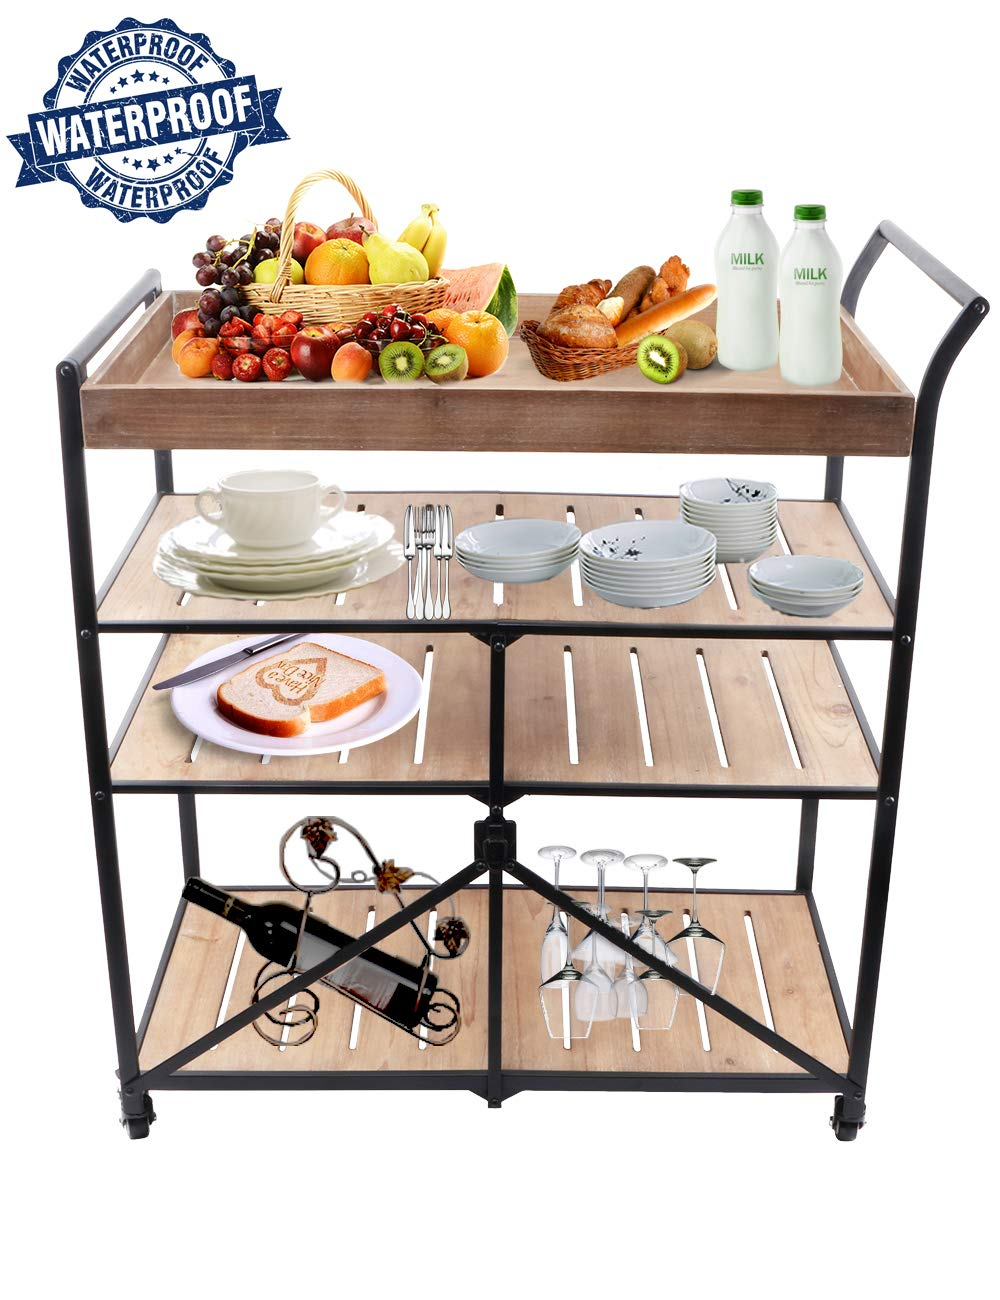 Kitchen Bar Cart 35 Fold 4-Tier Kitchen Serving Cart Can Very Convenient to Place Food